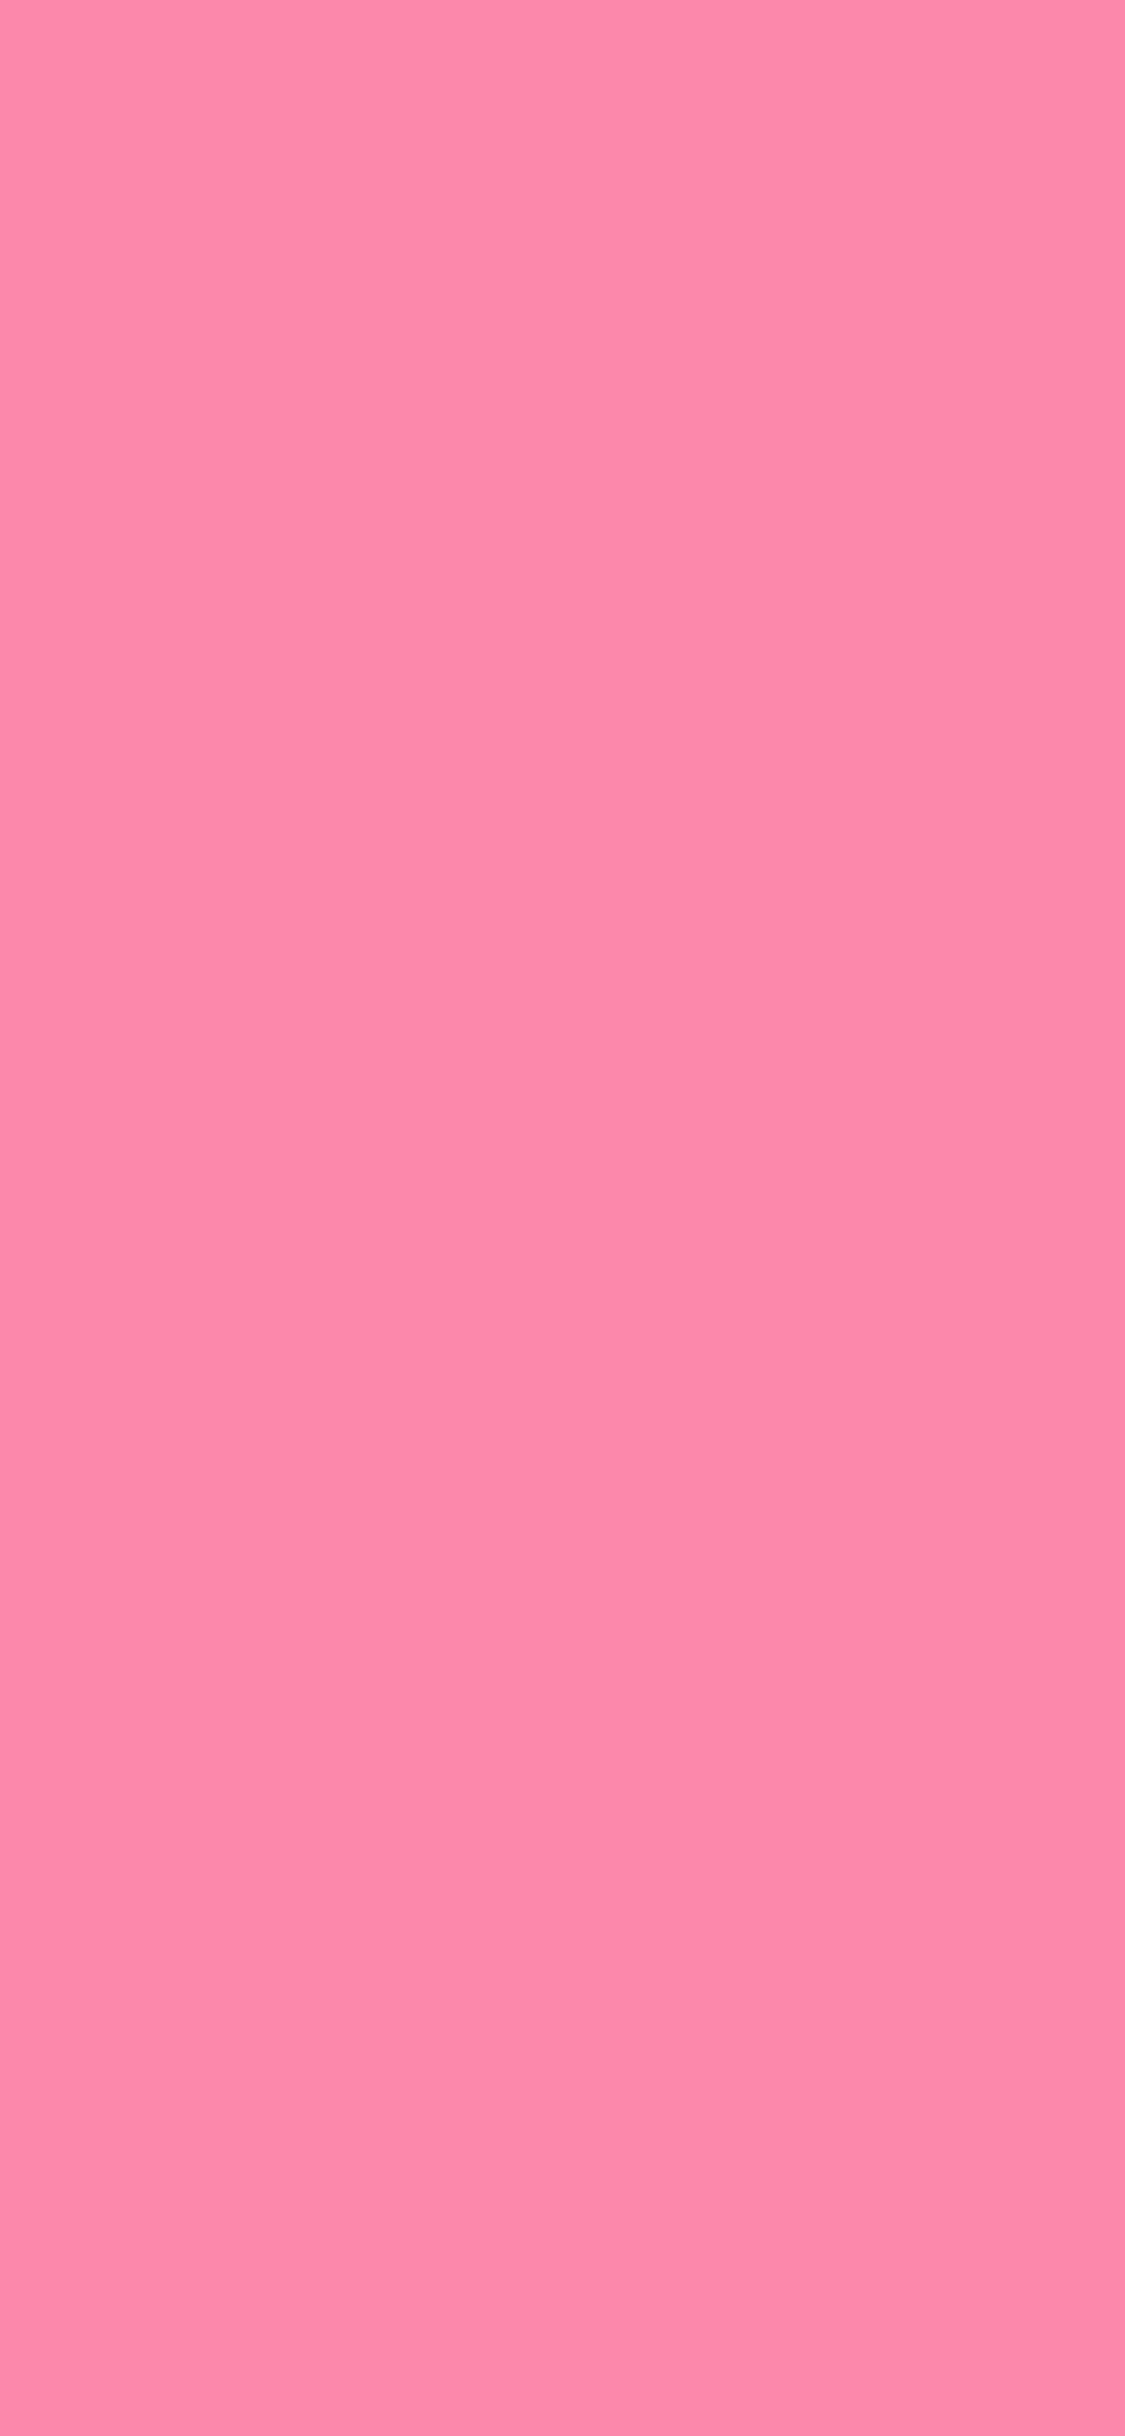 1125x2436 Tickle Me Pink Solid Color Background